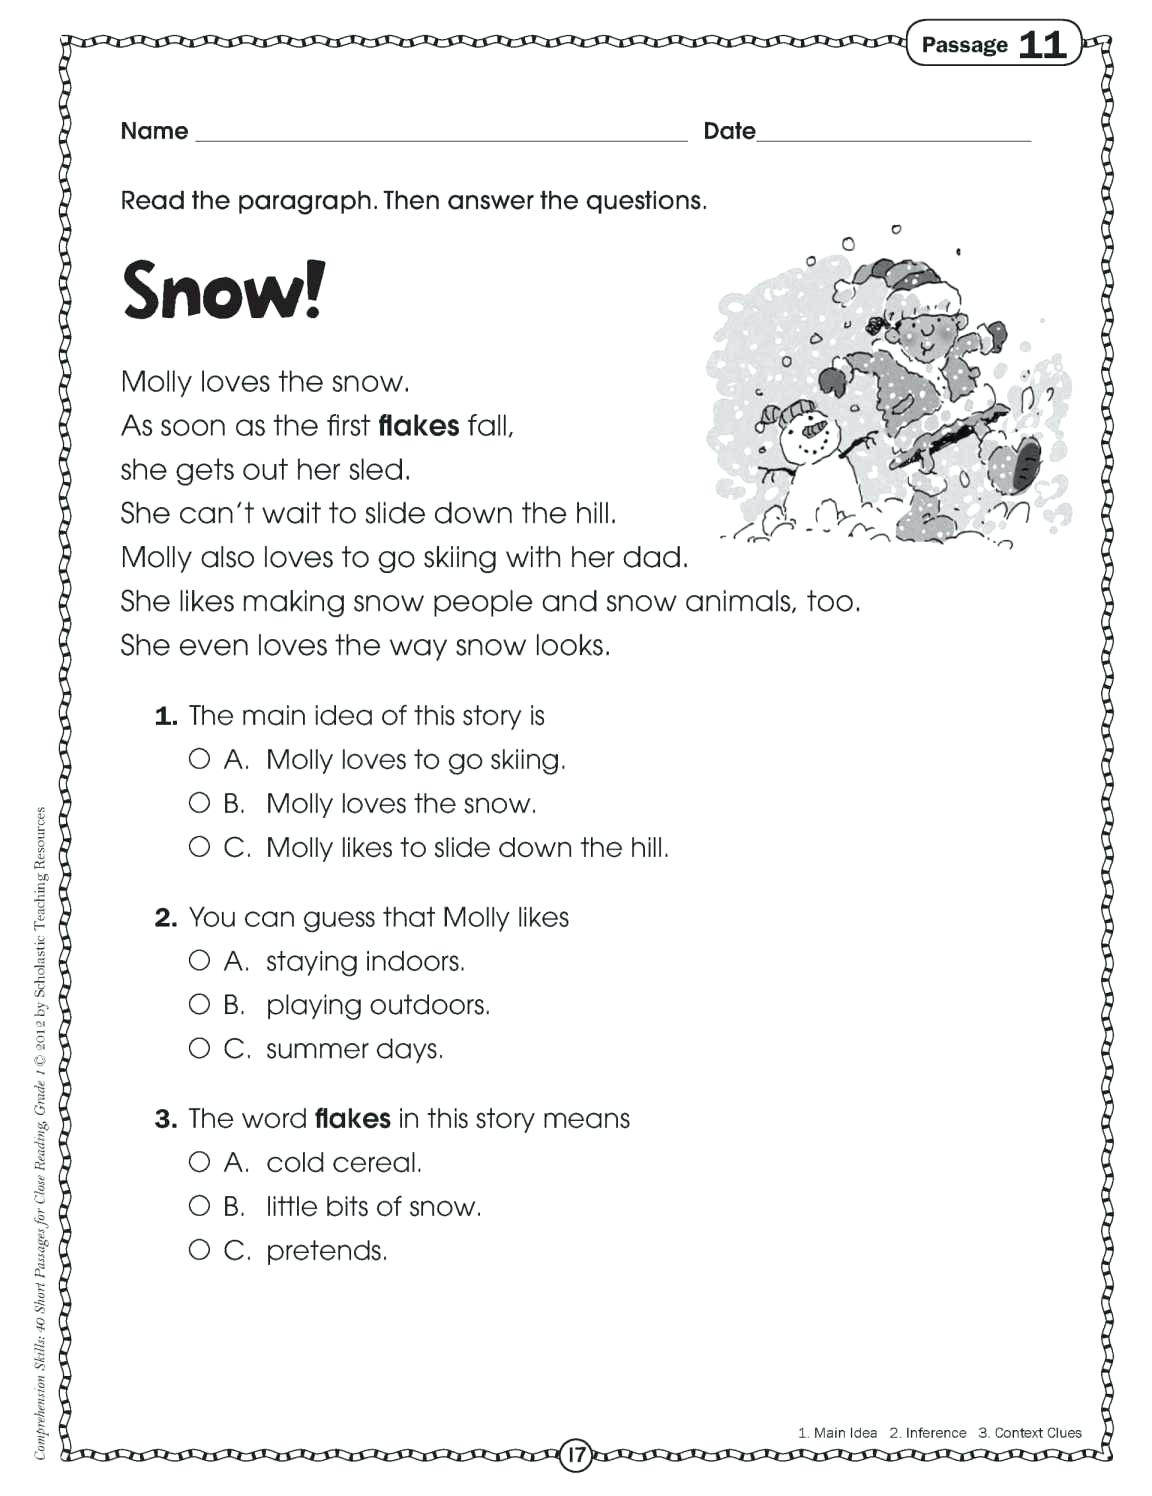 Comprehension Activities For 2Nd Grade Free Printable Reading - Free Printable Reading Comprehension Worksheets